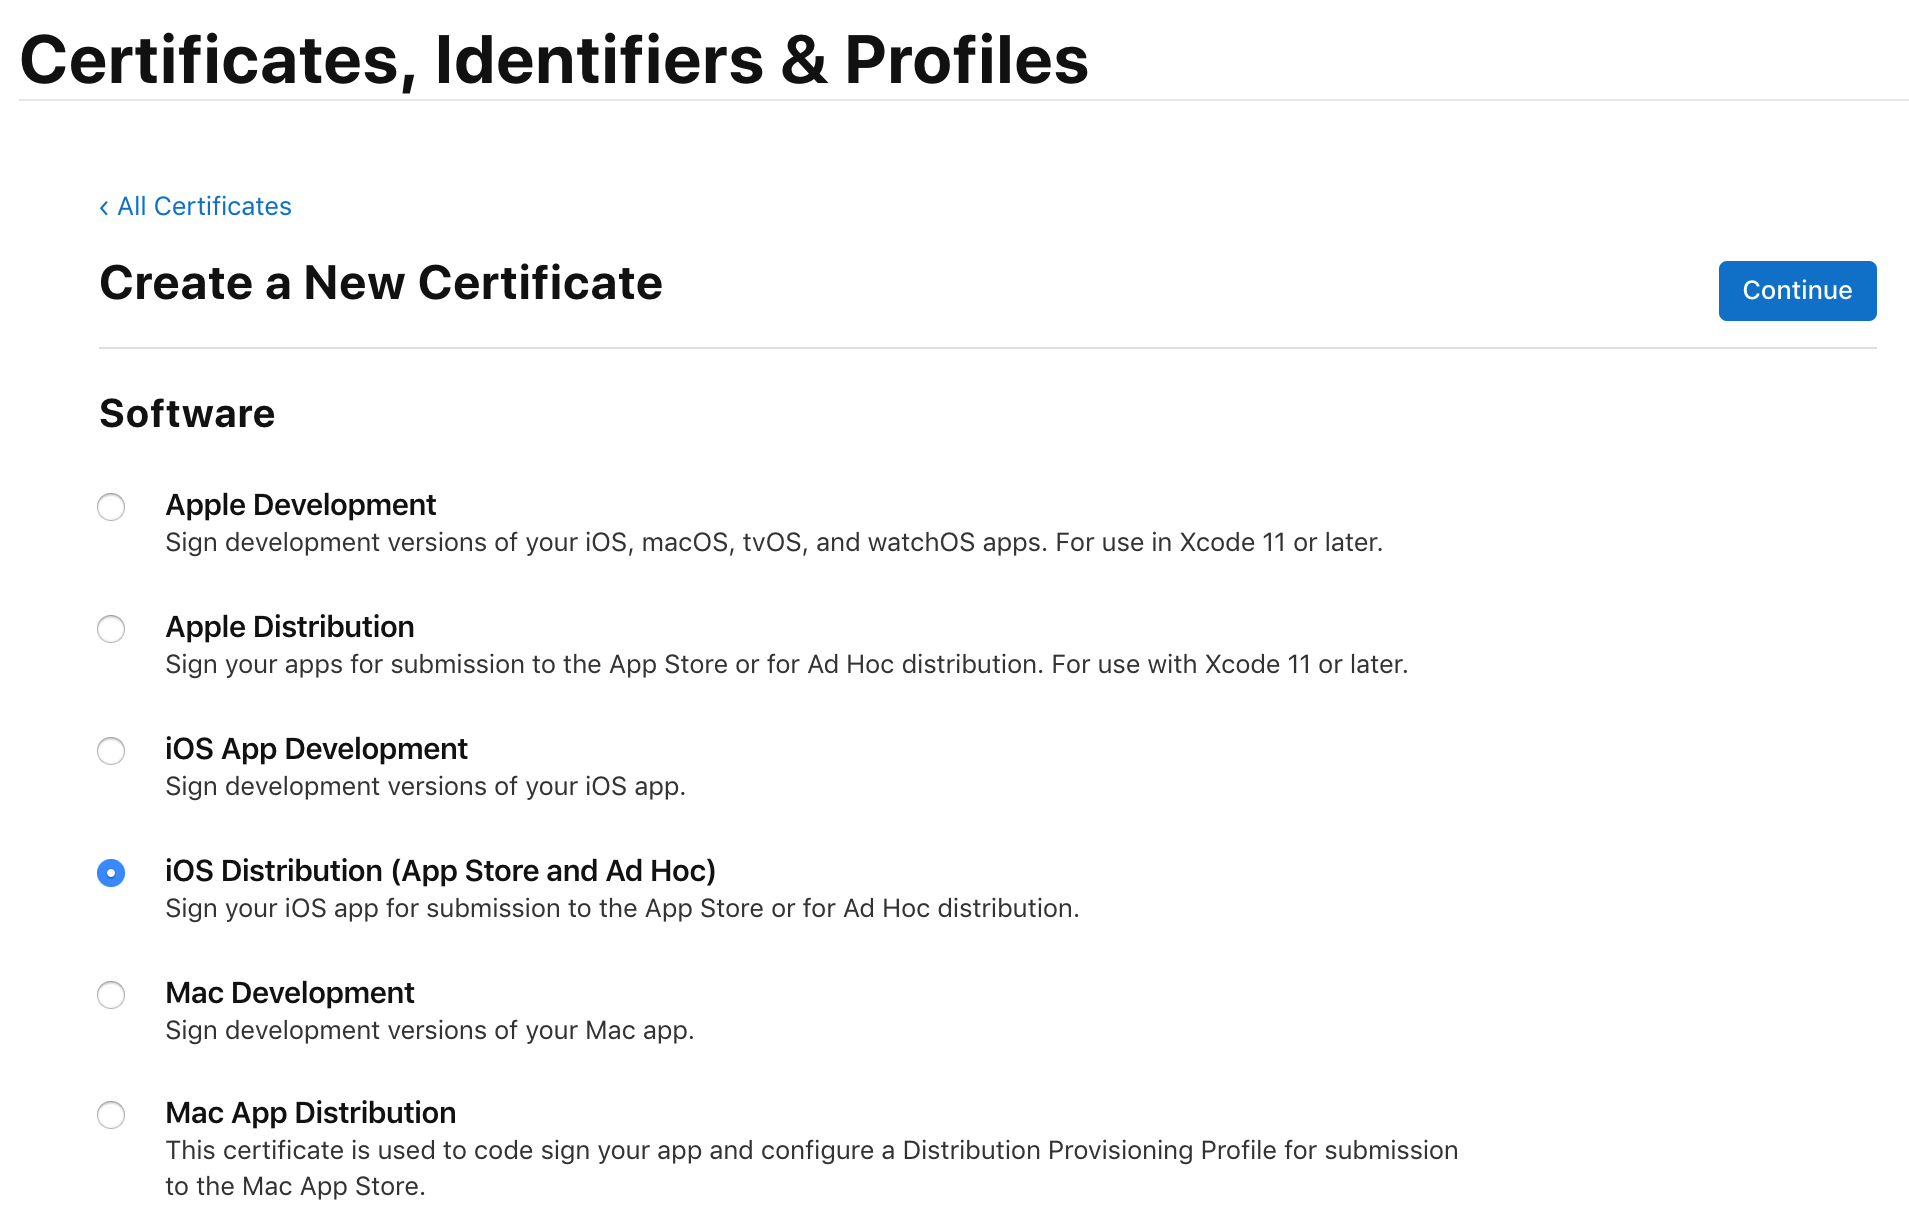 ios-distribution-certificate-06.png